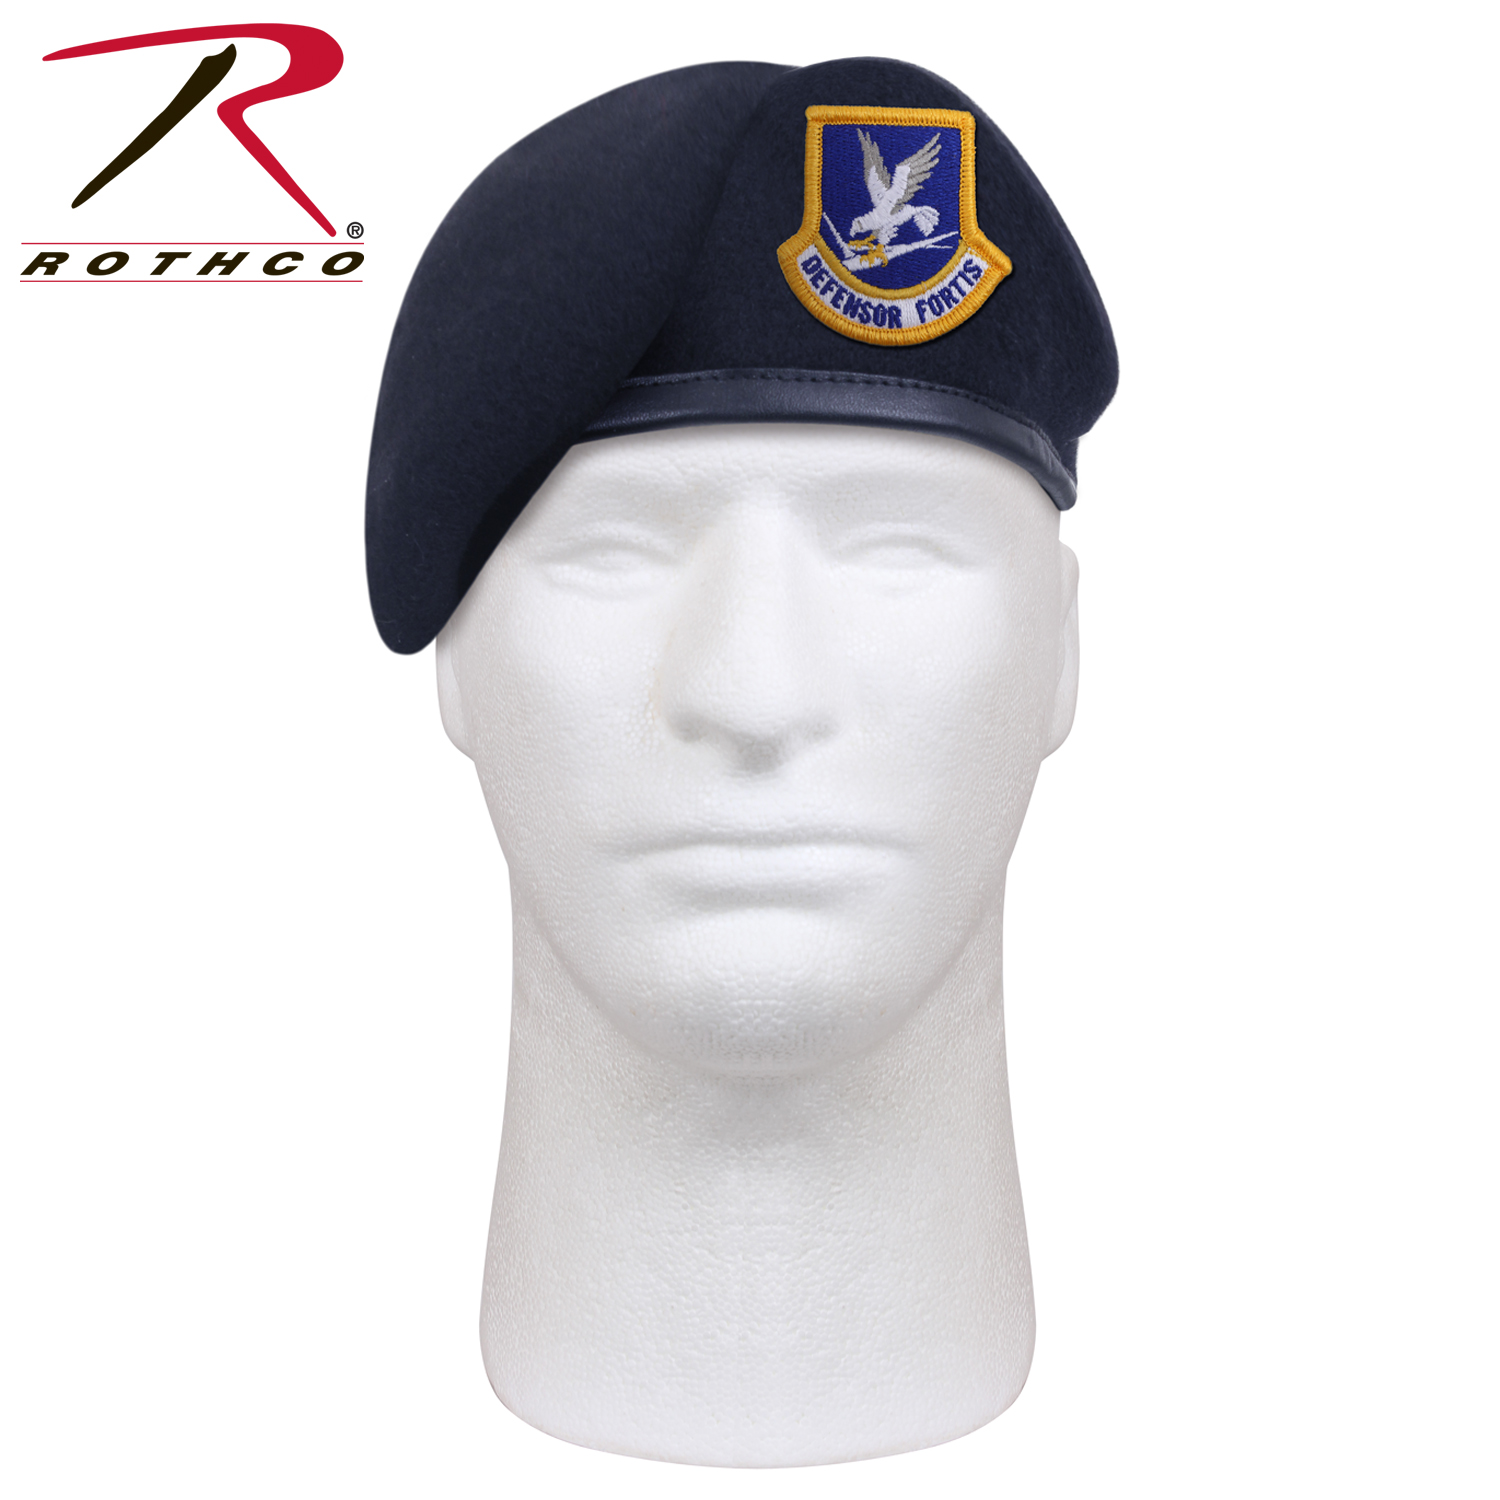 f8221cec71ef9 Rothco Inspection Ready Beret With USAF Flash